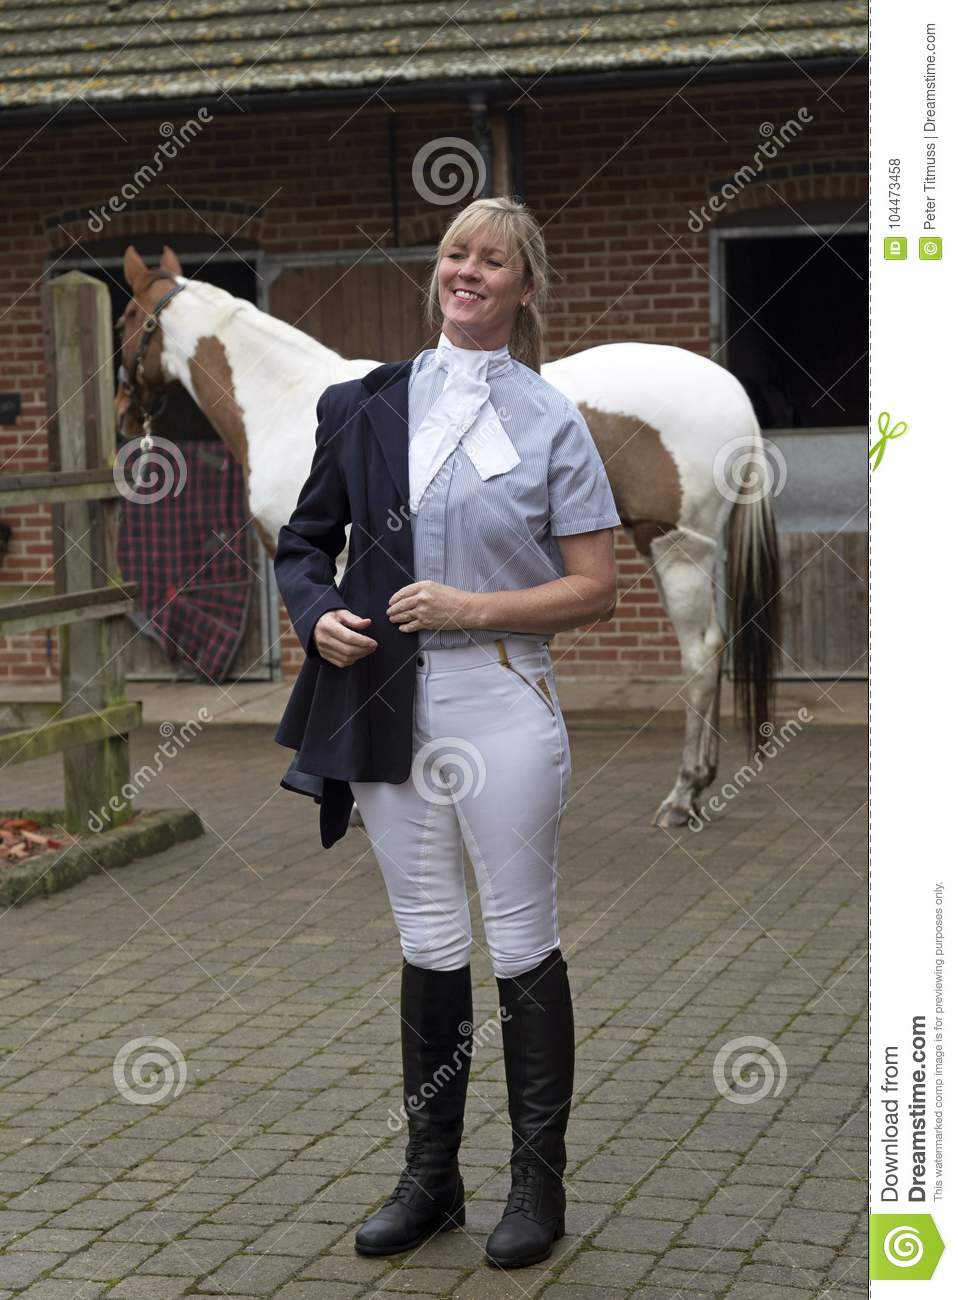 Woman Horse Rider Getting Dressed In A Blue Jacket Stock Photo Image Of Equestrian Portrait 104473458